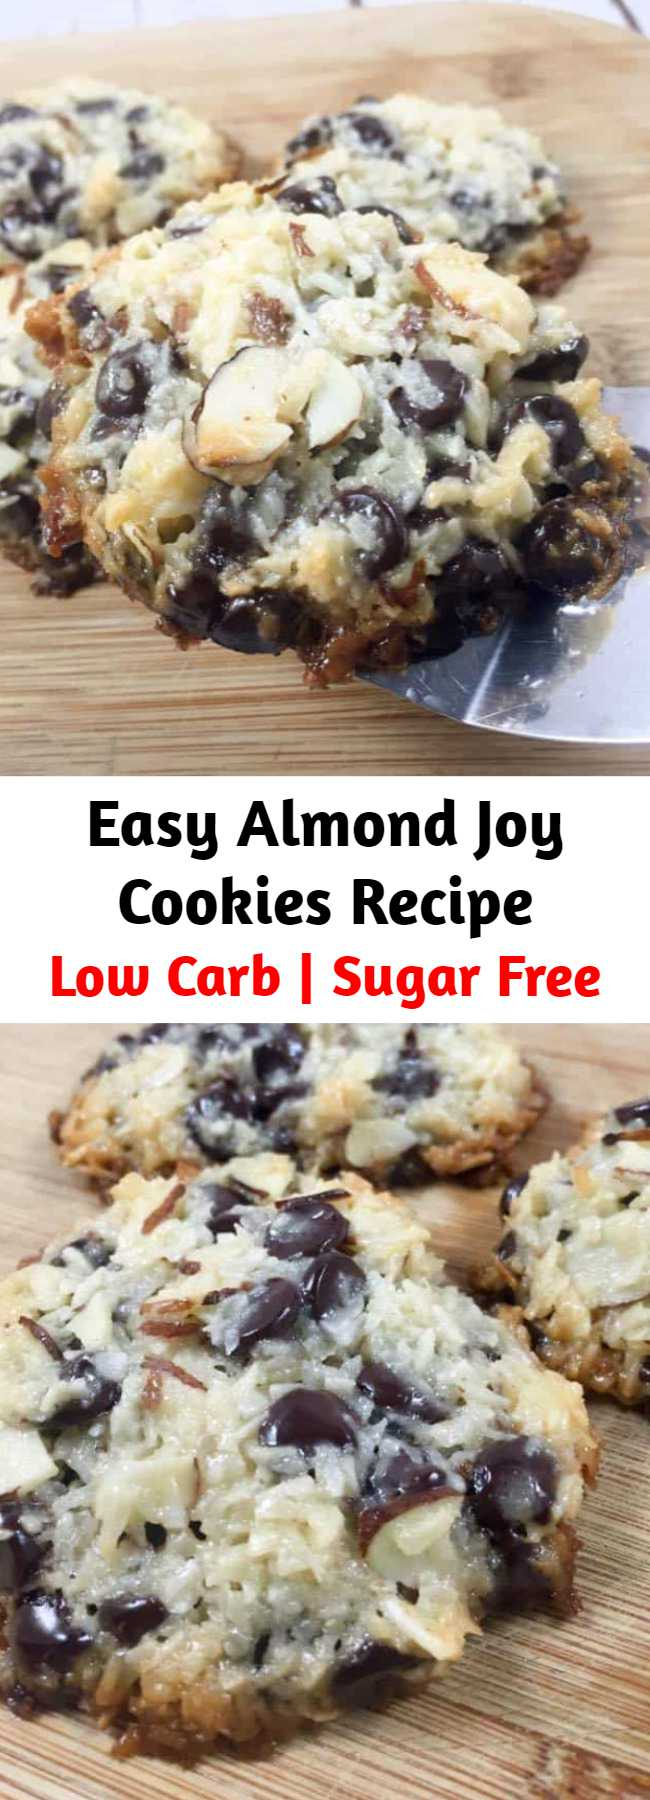 Super Easy Almond Joy Cookies Recipe - Keto Low Carb Almond Joy Cookies! These Almond Joy Cookies only have 4 ingredients and are everything you've dreamed of in a low carb chocolate chip coconut cookie. Filled with coconut, stevia-sweetened chocolate chips, almonds, and homemade (sugar free) low carb sweetened condensed milk, you'll want to make these again and again!